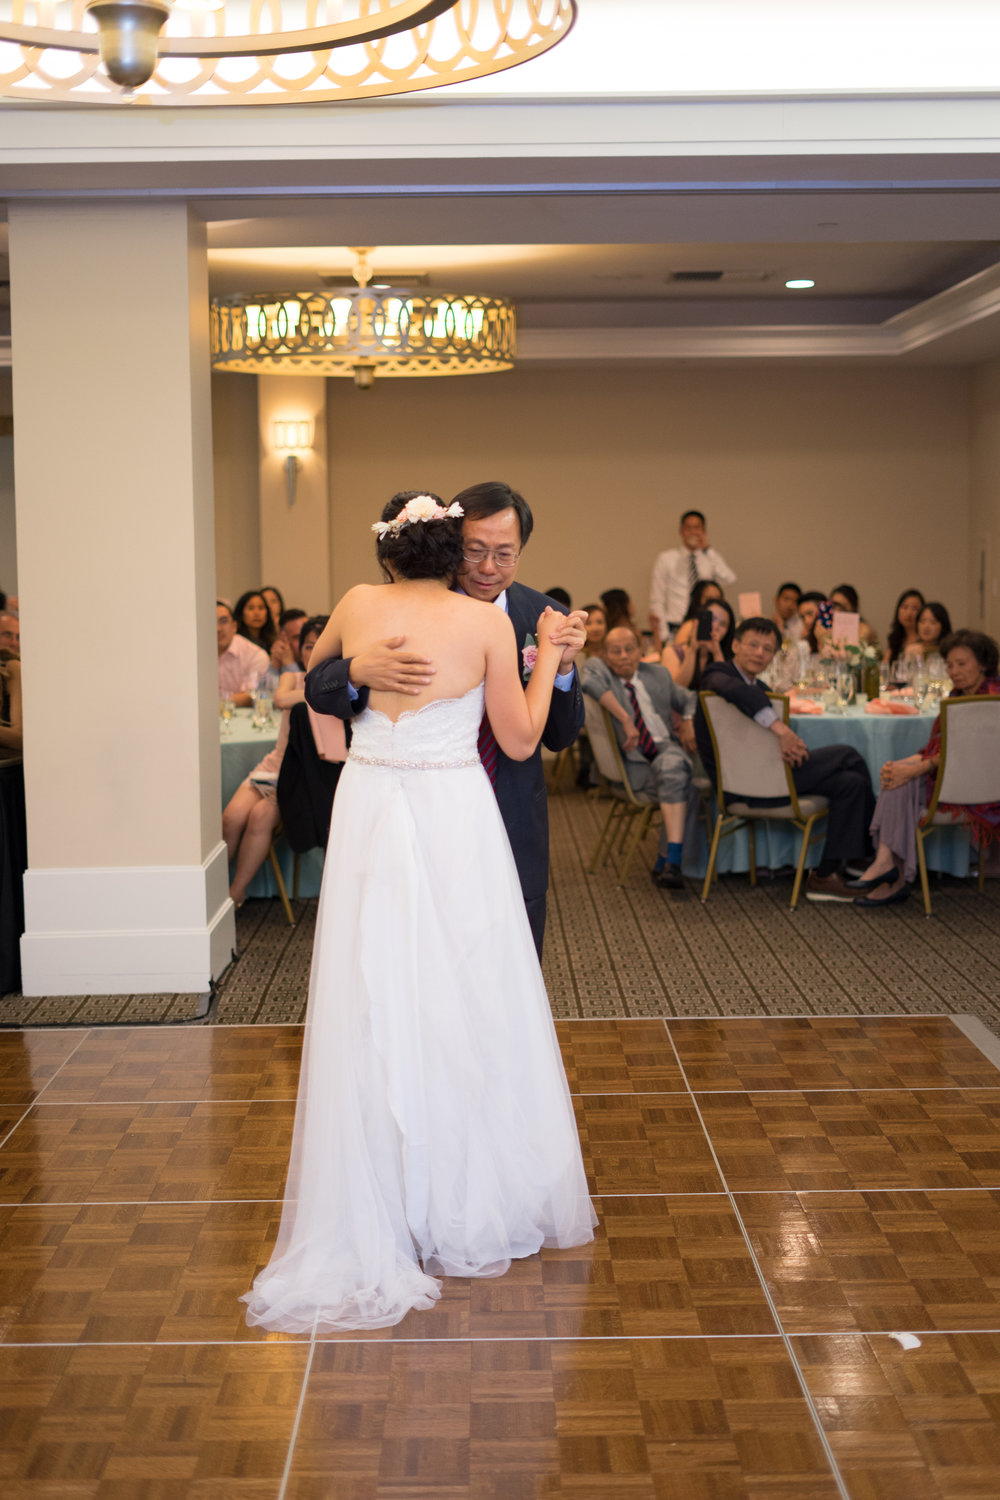 trynhphoto_wedding_photography_Standford_PaloAlto_SF_BayArea_Destination_OC_HA-485.jpg